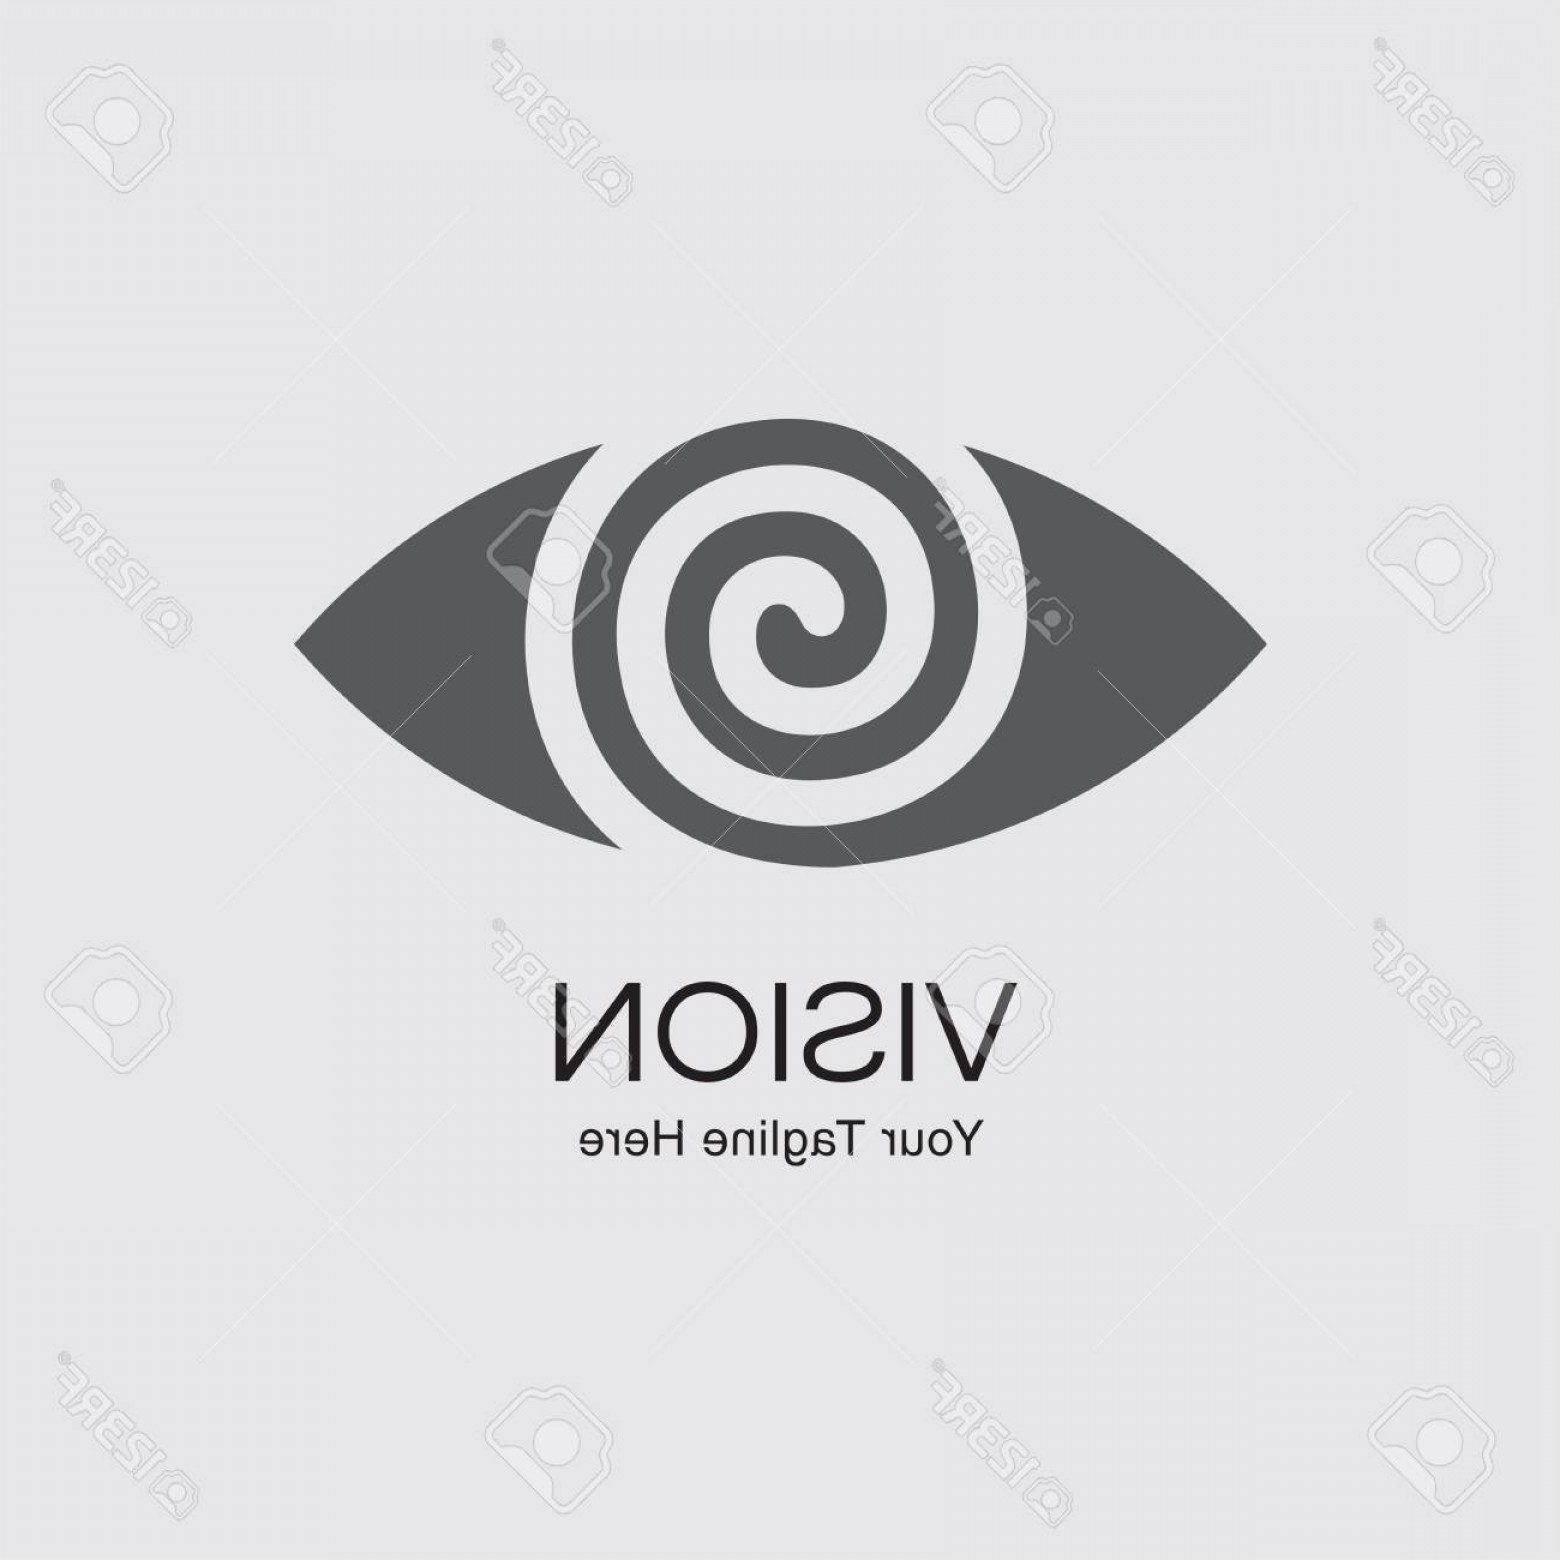 Eye Vector Logo: Photostock Vector Eye Vector Logo Design Template Modern Minimal Flat Design Style Vector Illustration